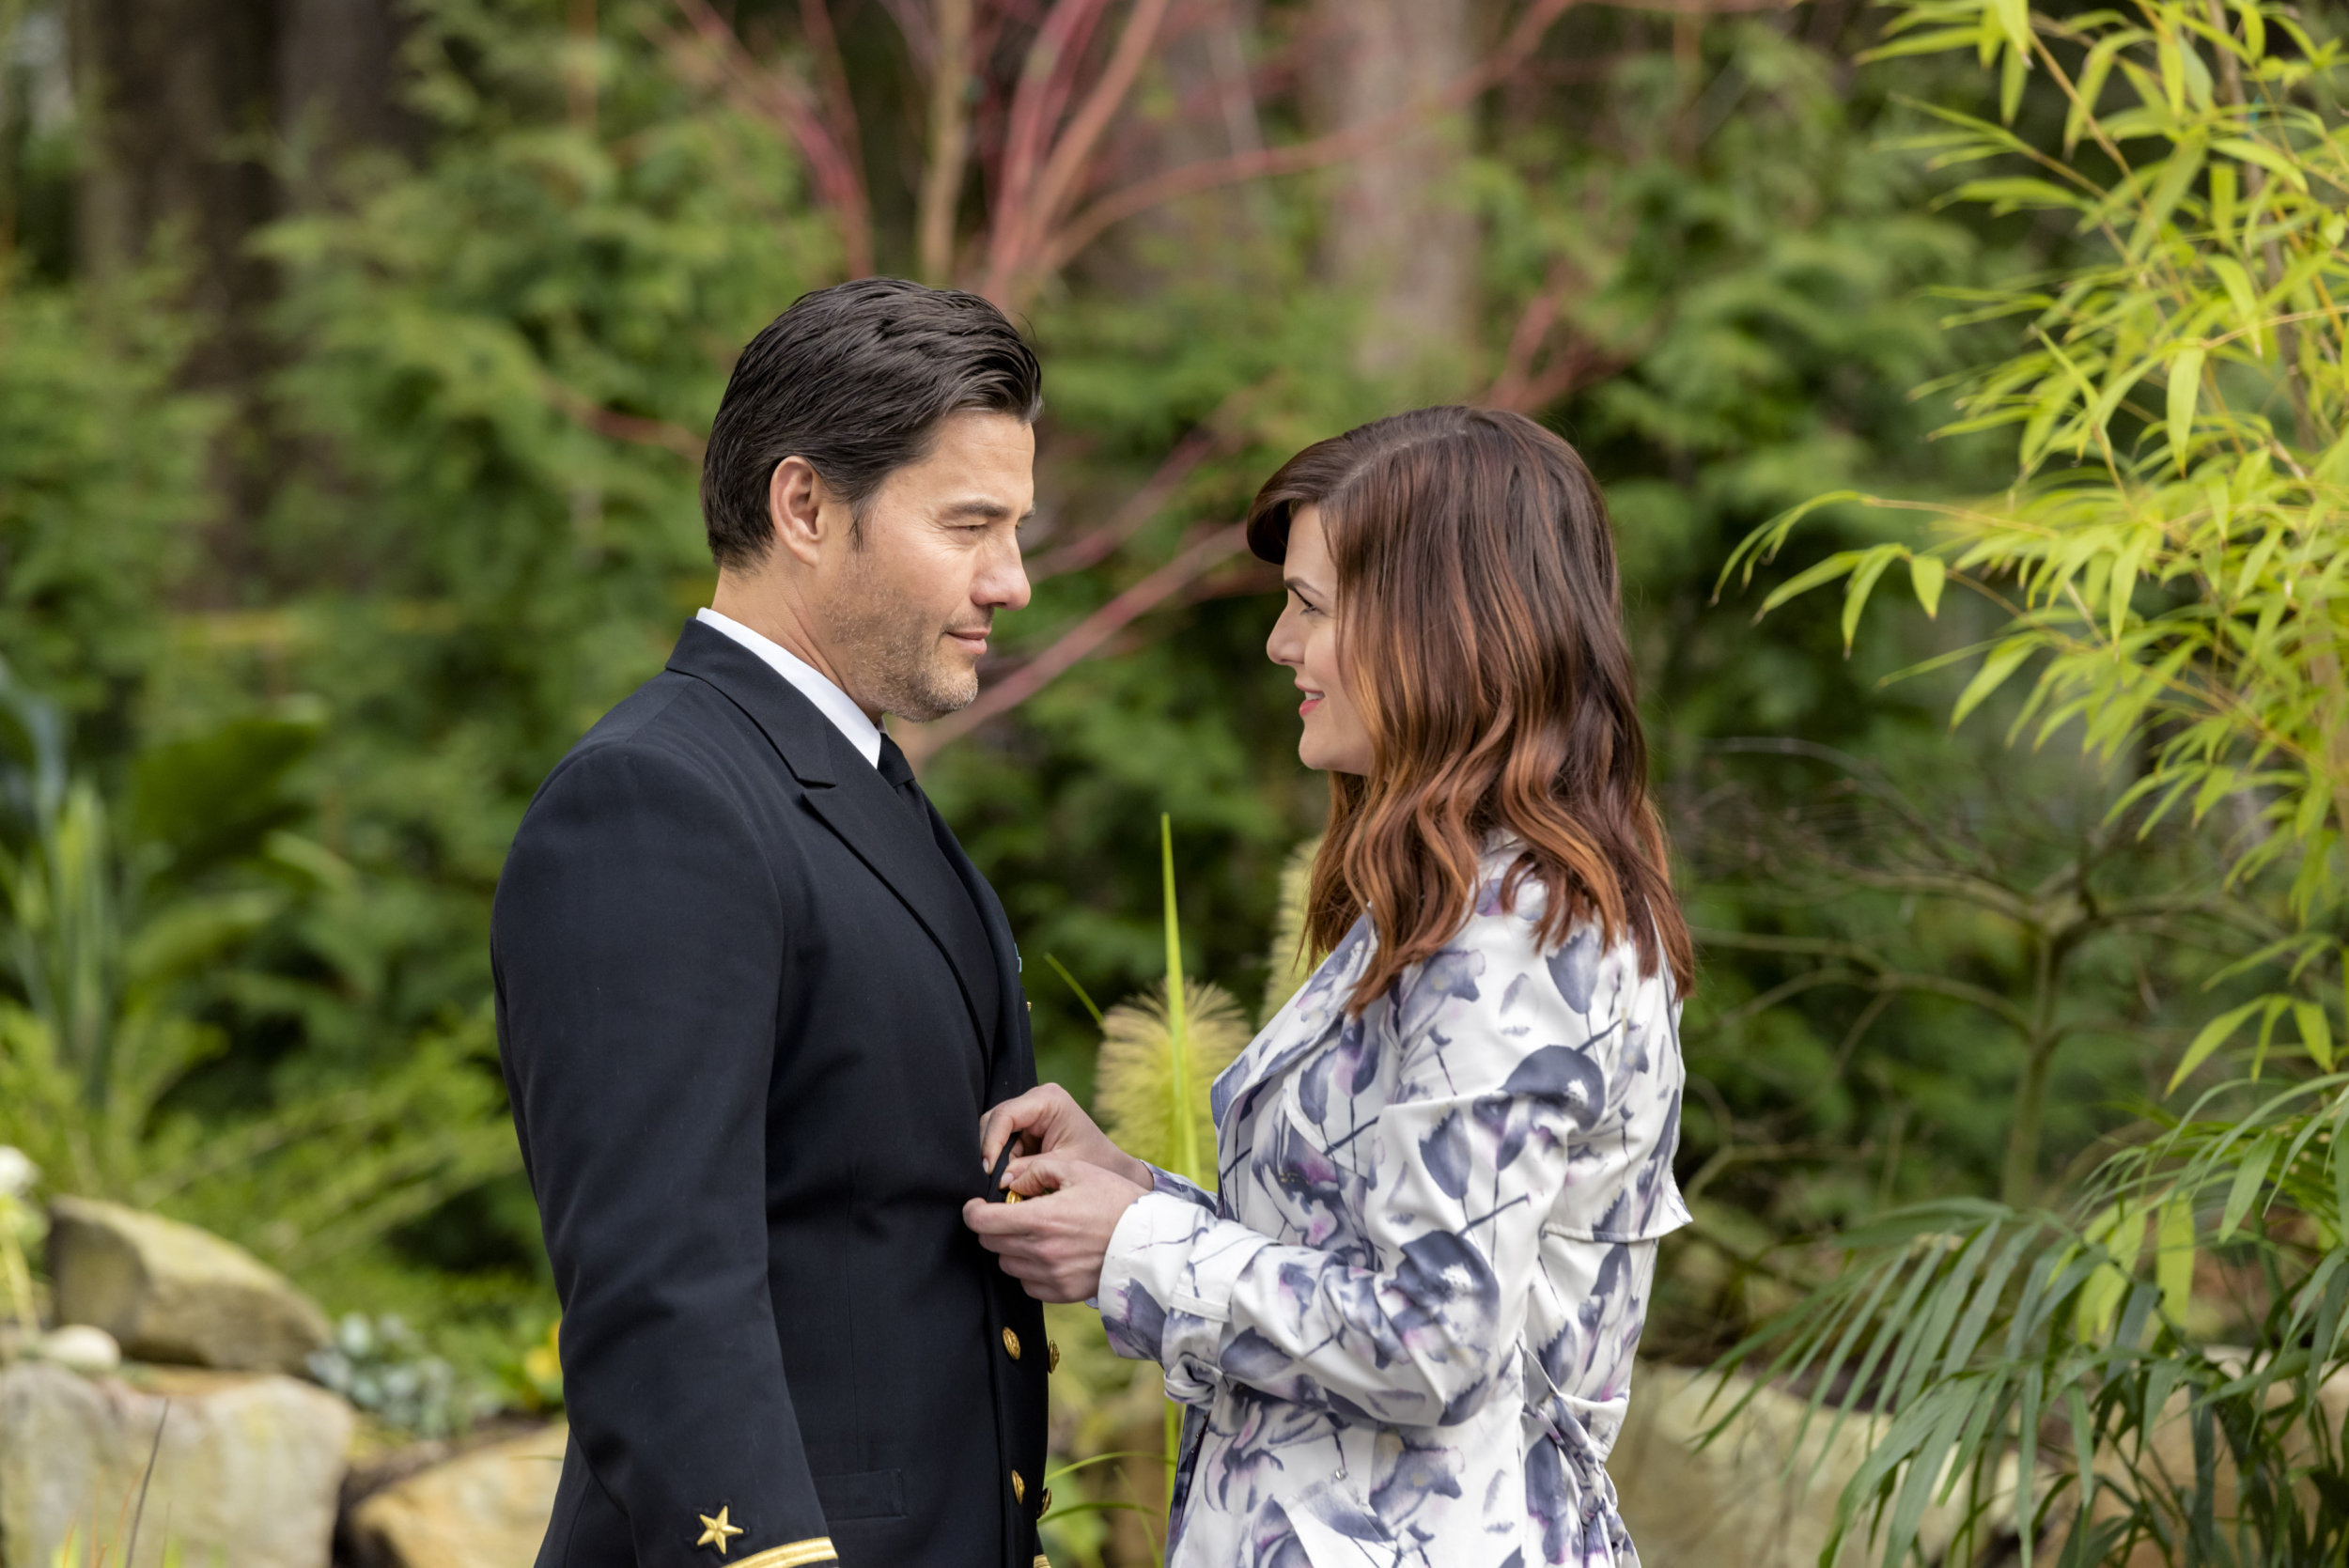 The Best Hallmark Movies of All-Time - Southern Living